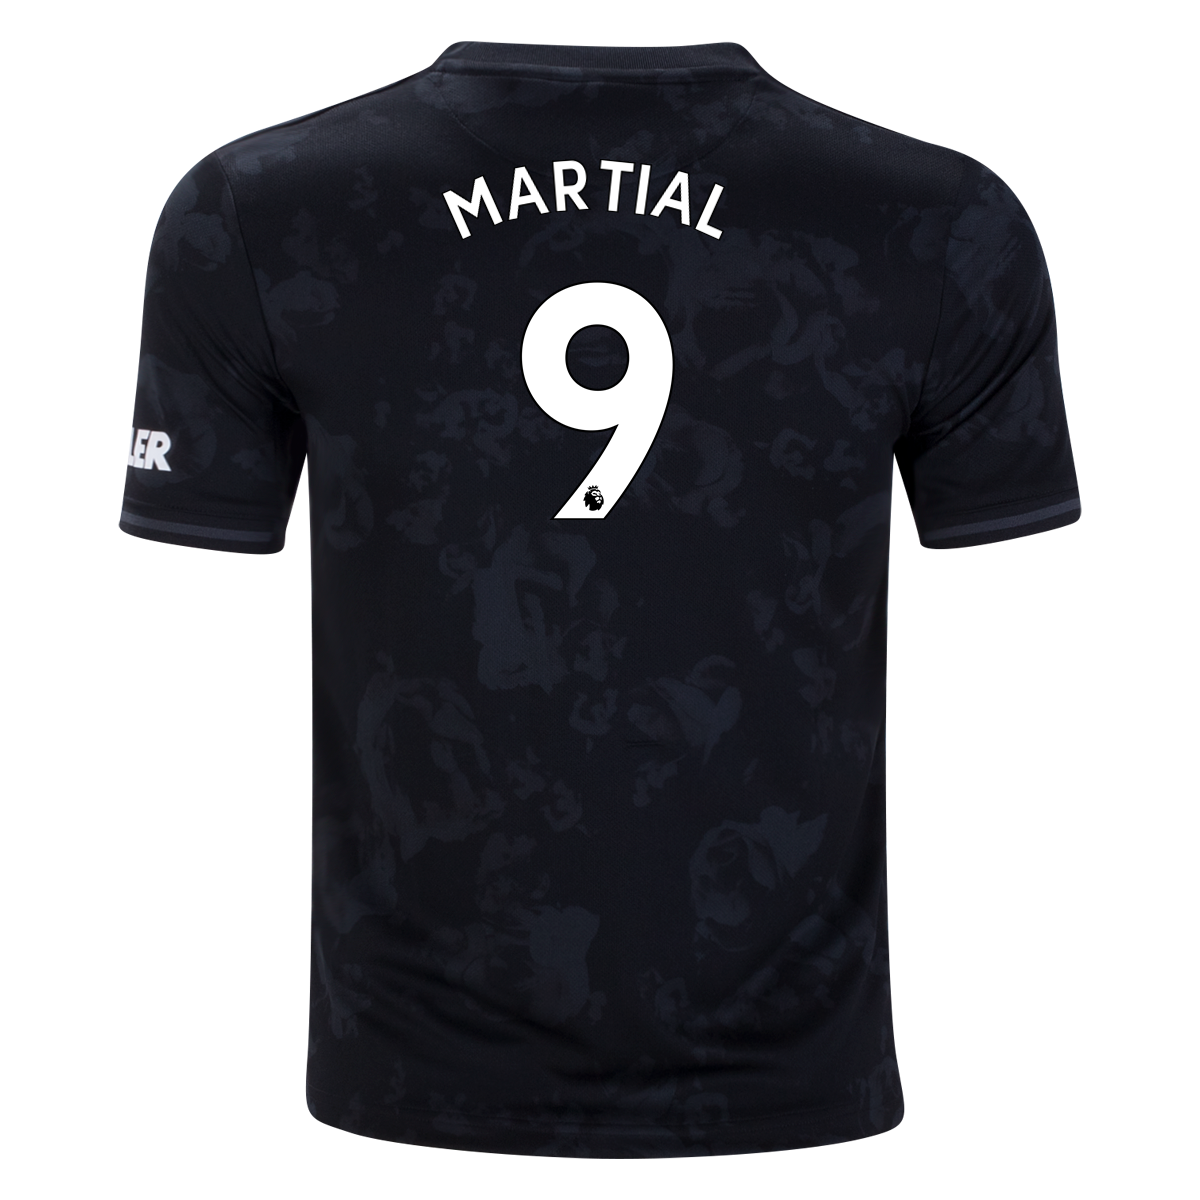 Adidas Anthony Martial Manchester United Youth Third Jersey 19 20 Yxl Manchester United Youth Manchester United Players Manchester United